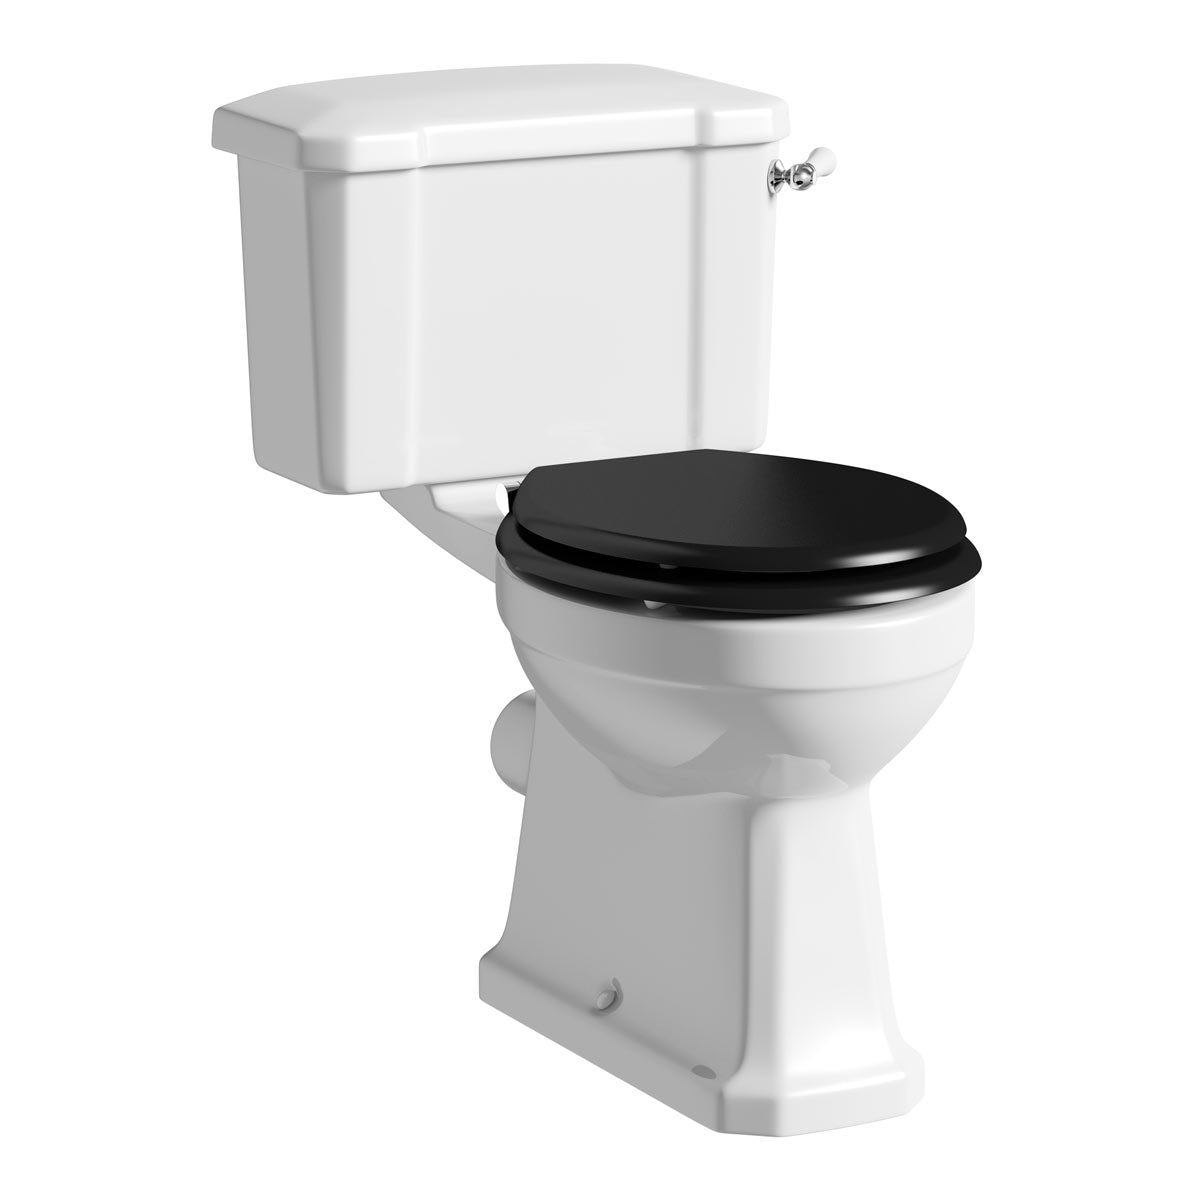 The Bath Co. Camberley close coupled toilet with wooden soft close seat black